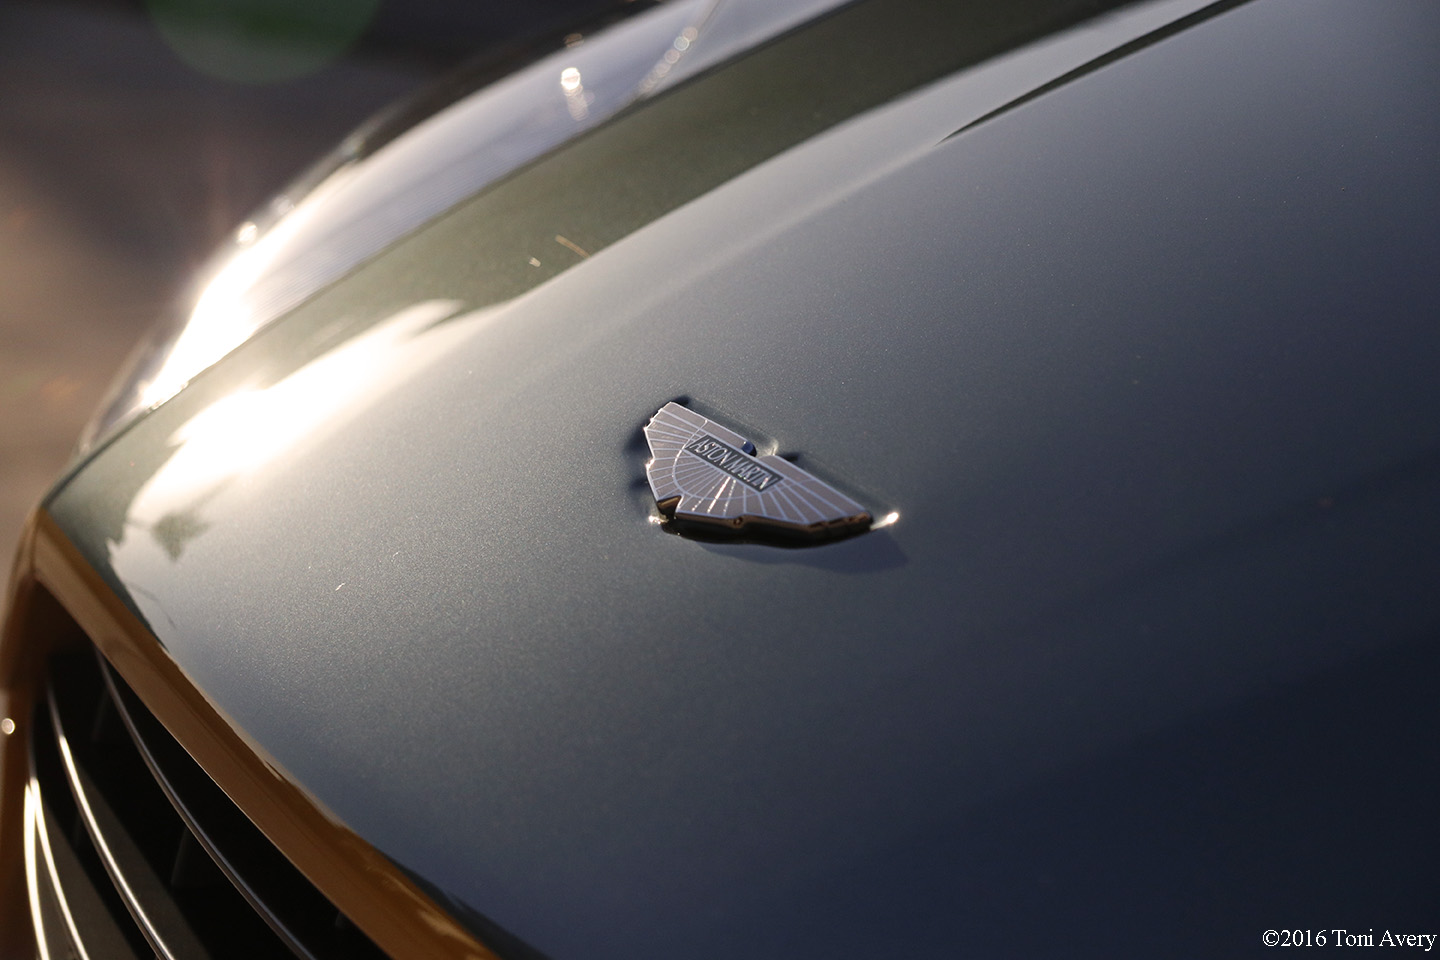 2016 Aston Martin Vantage GT nose badge